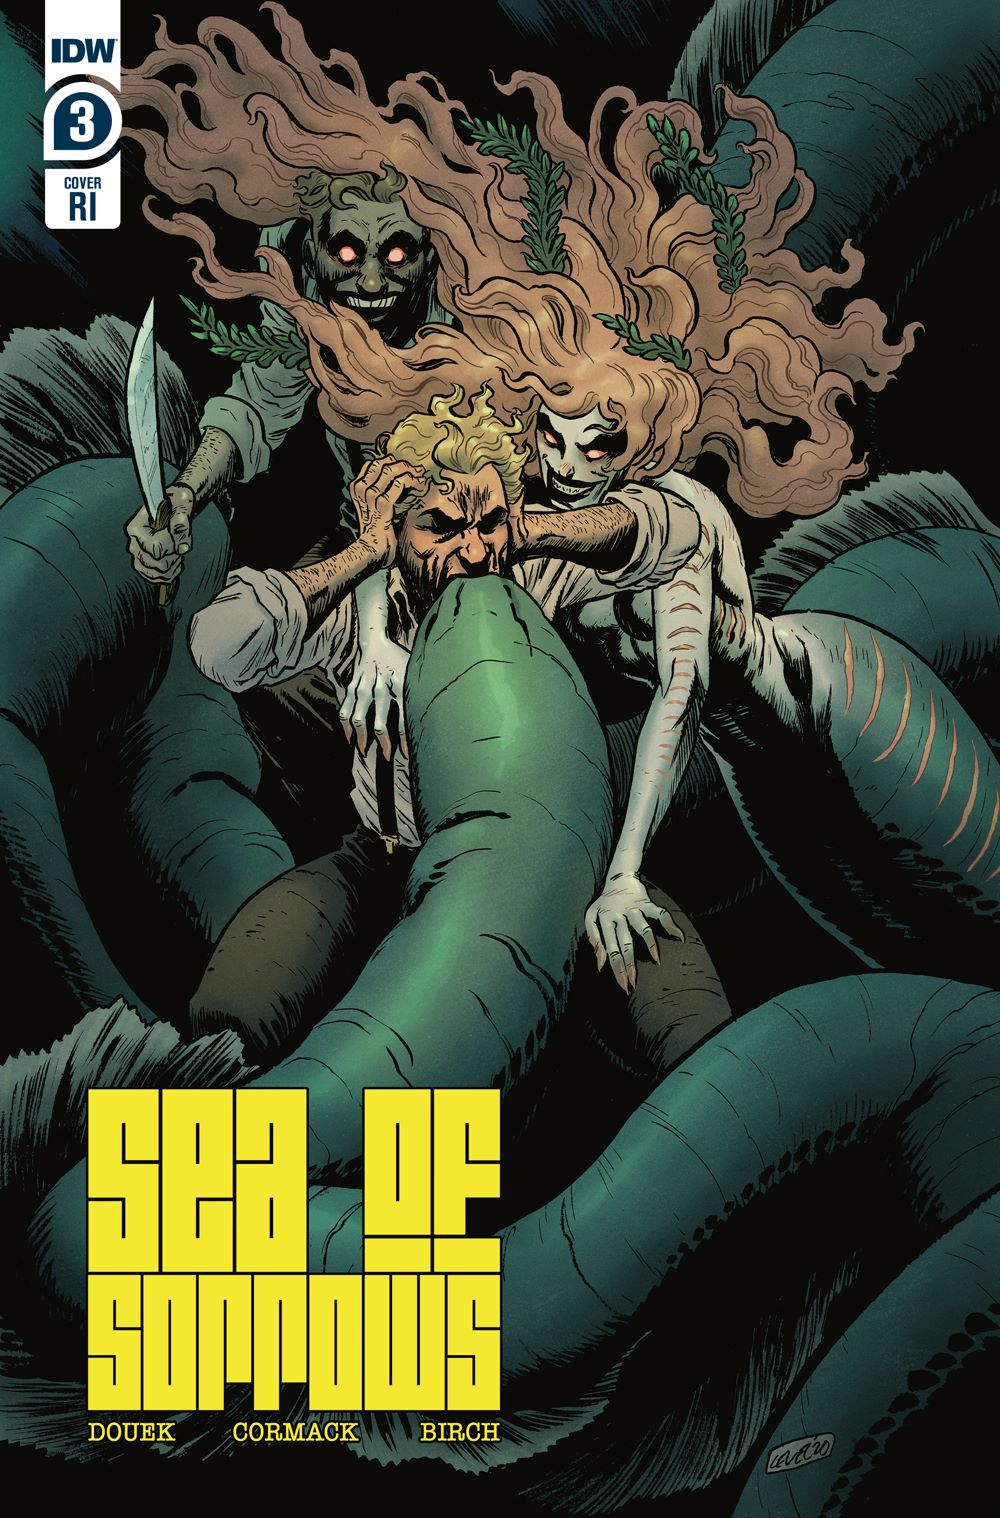 SeaofSorrow_04-RIcvr ComicList: IDW Publishing New Releases for 02/03/2021